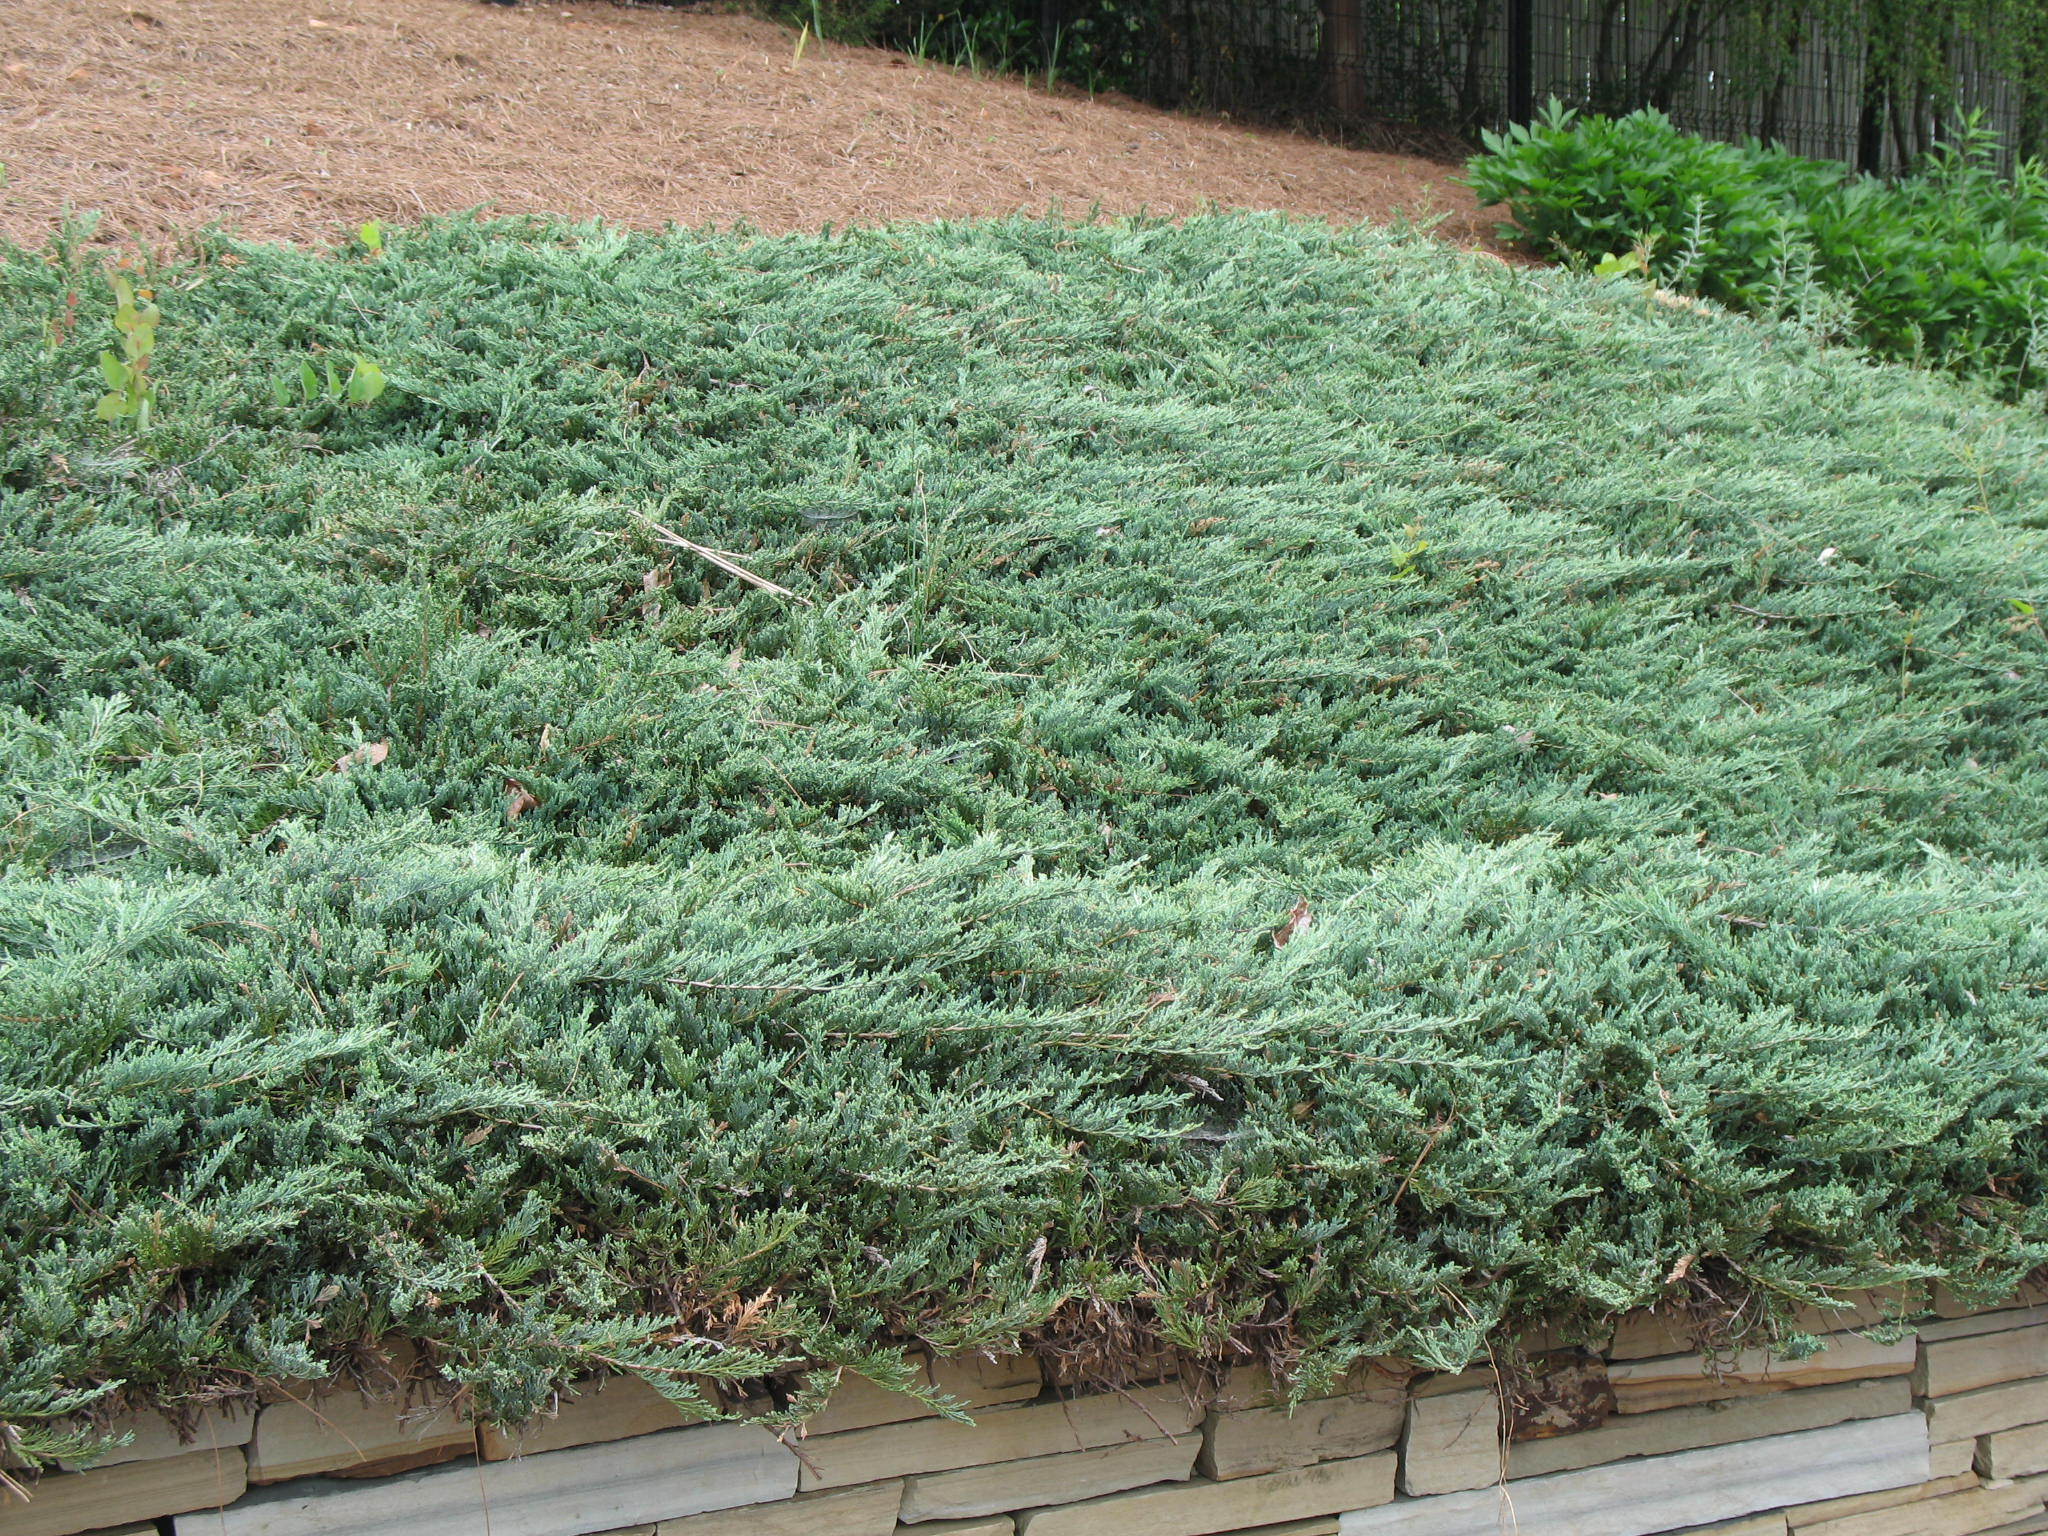 Tolerance of landscape groundcover and vine species to for The juniper